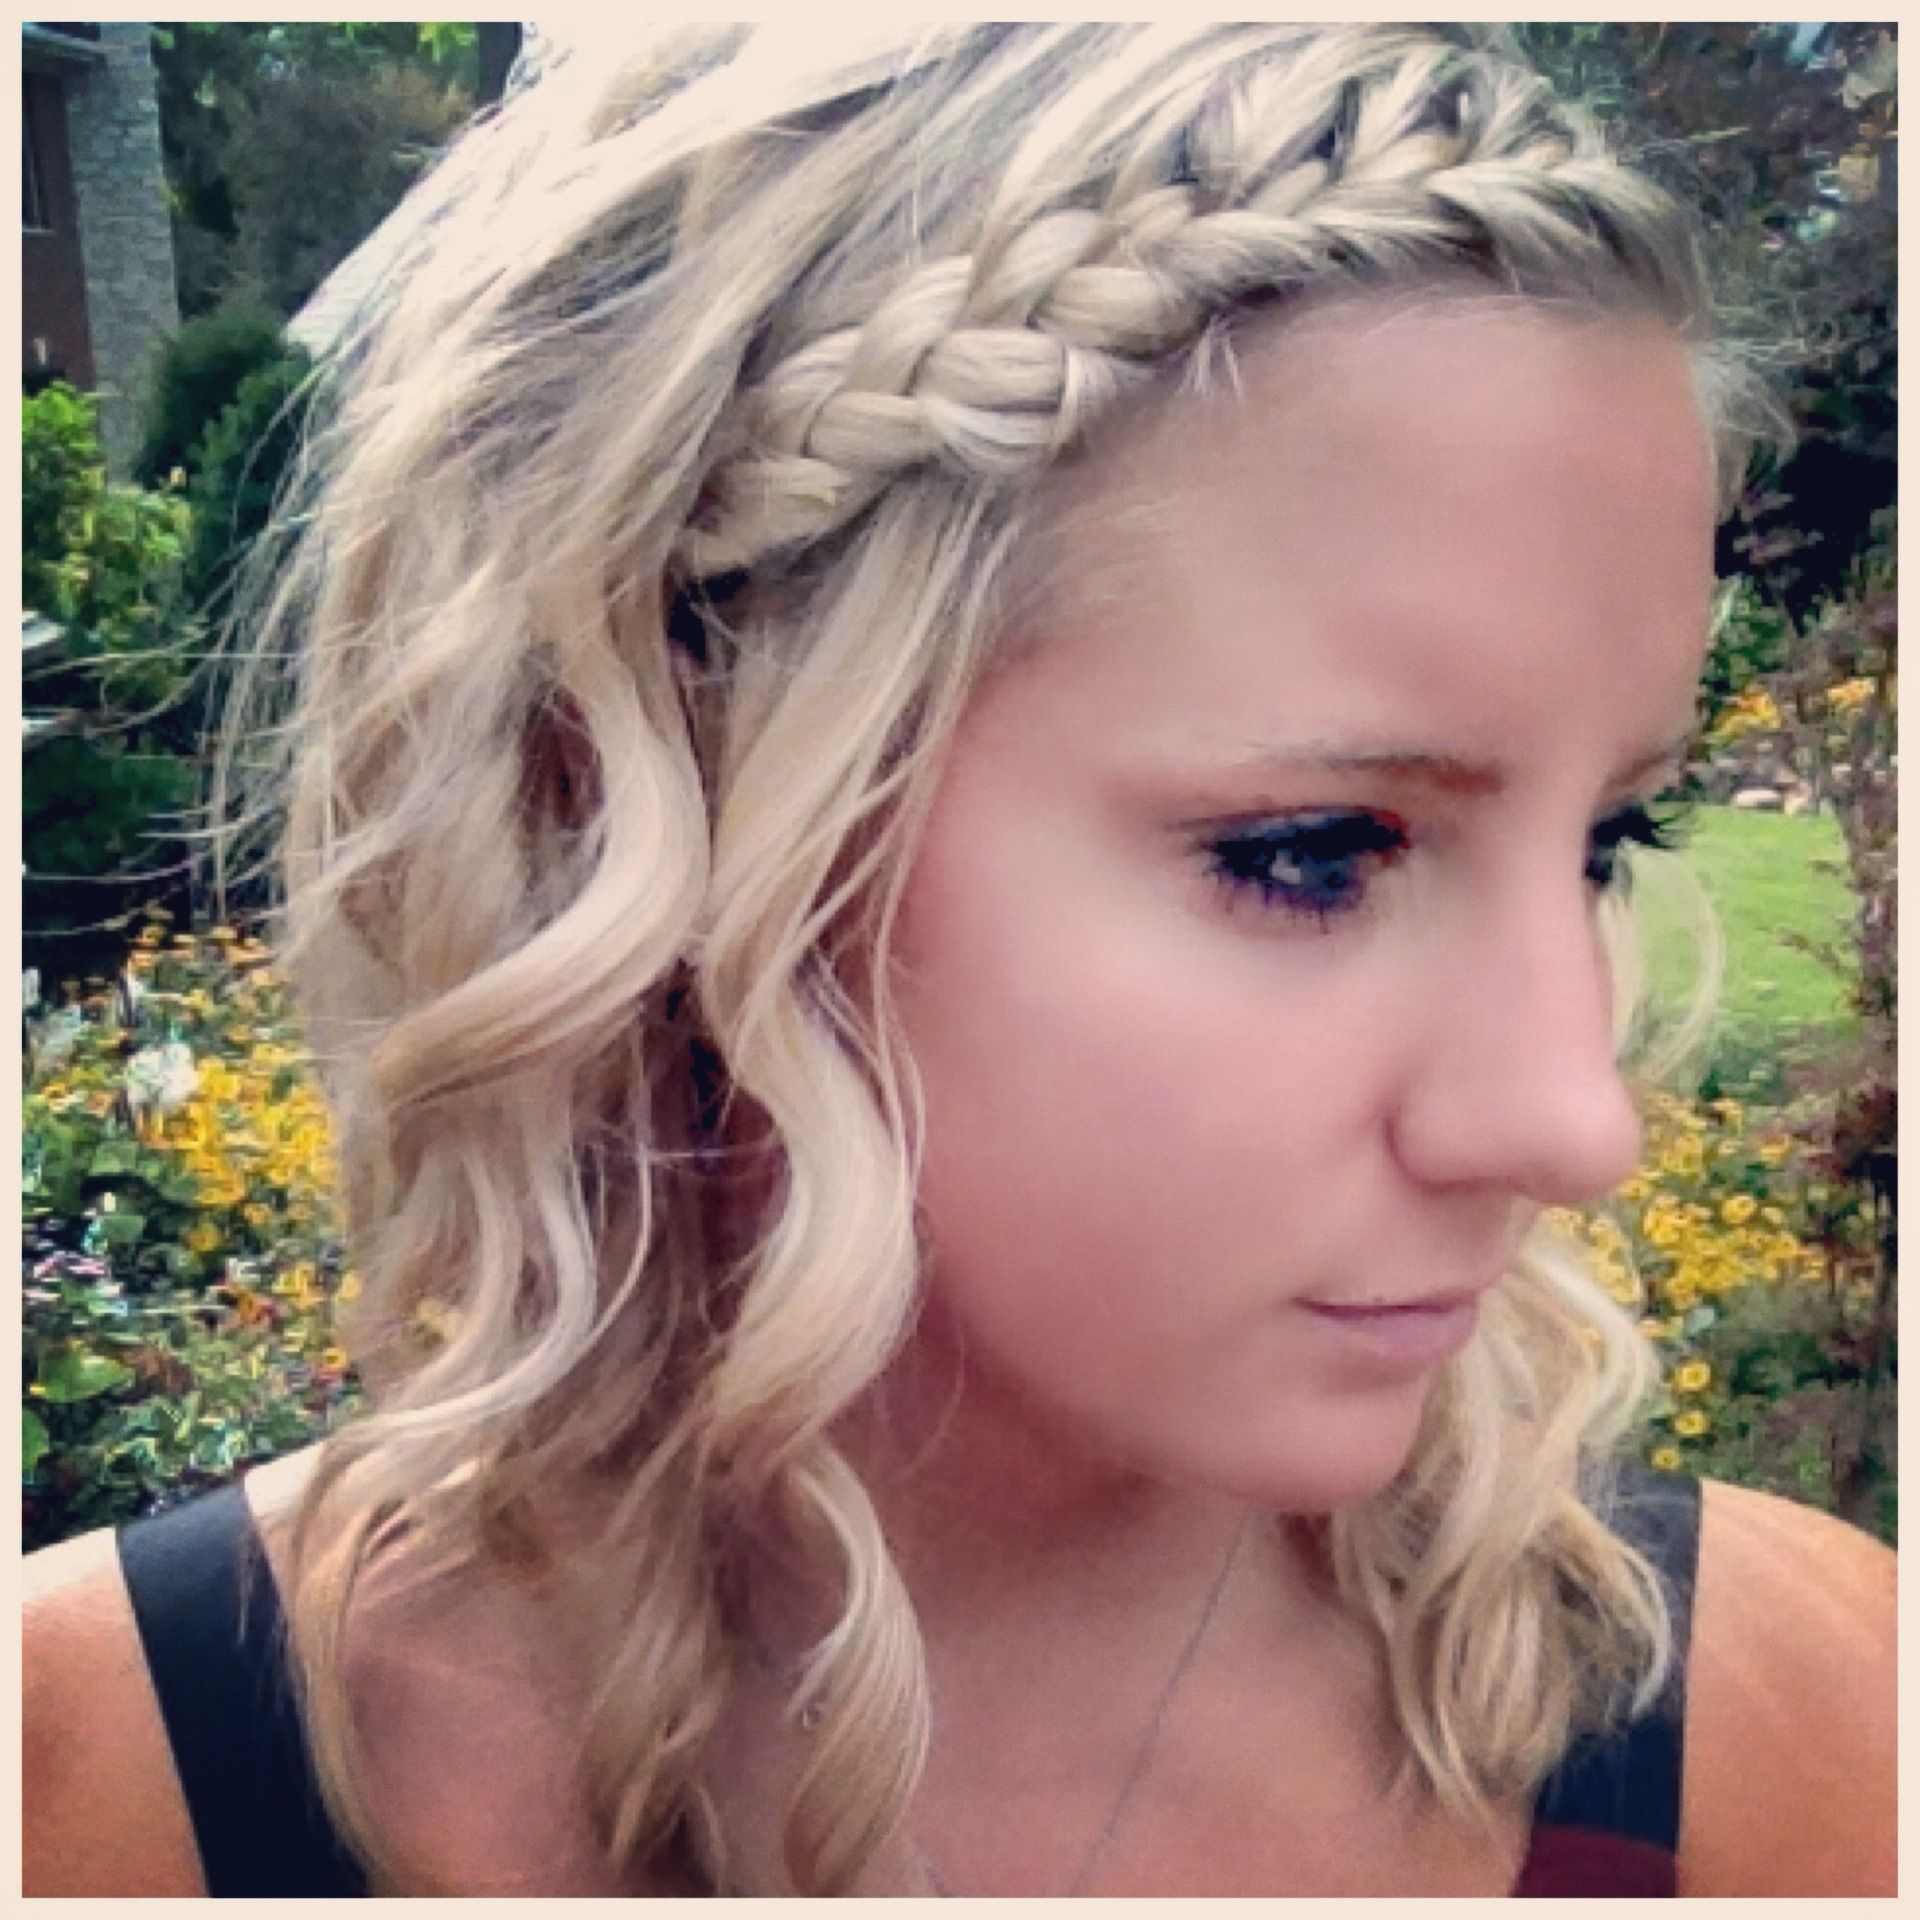 Easy Hairdo With French Braid And Curling Wand Curl